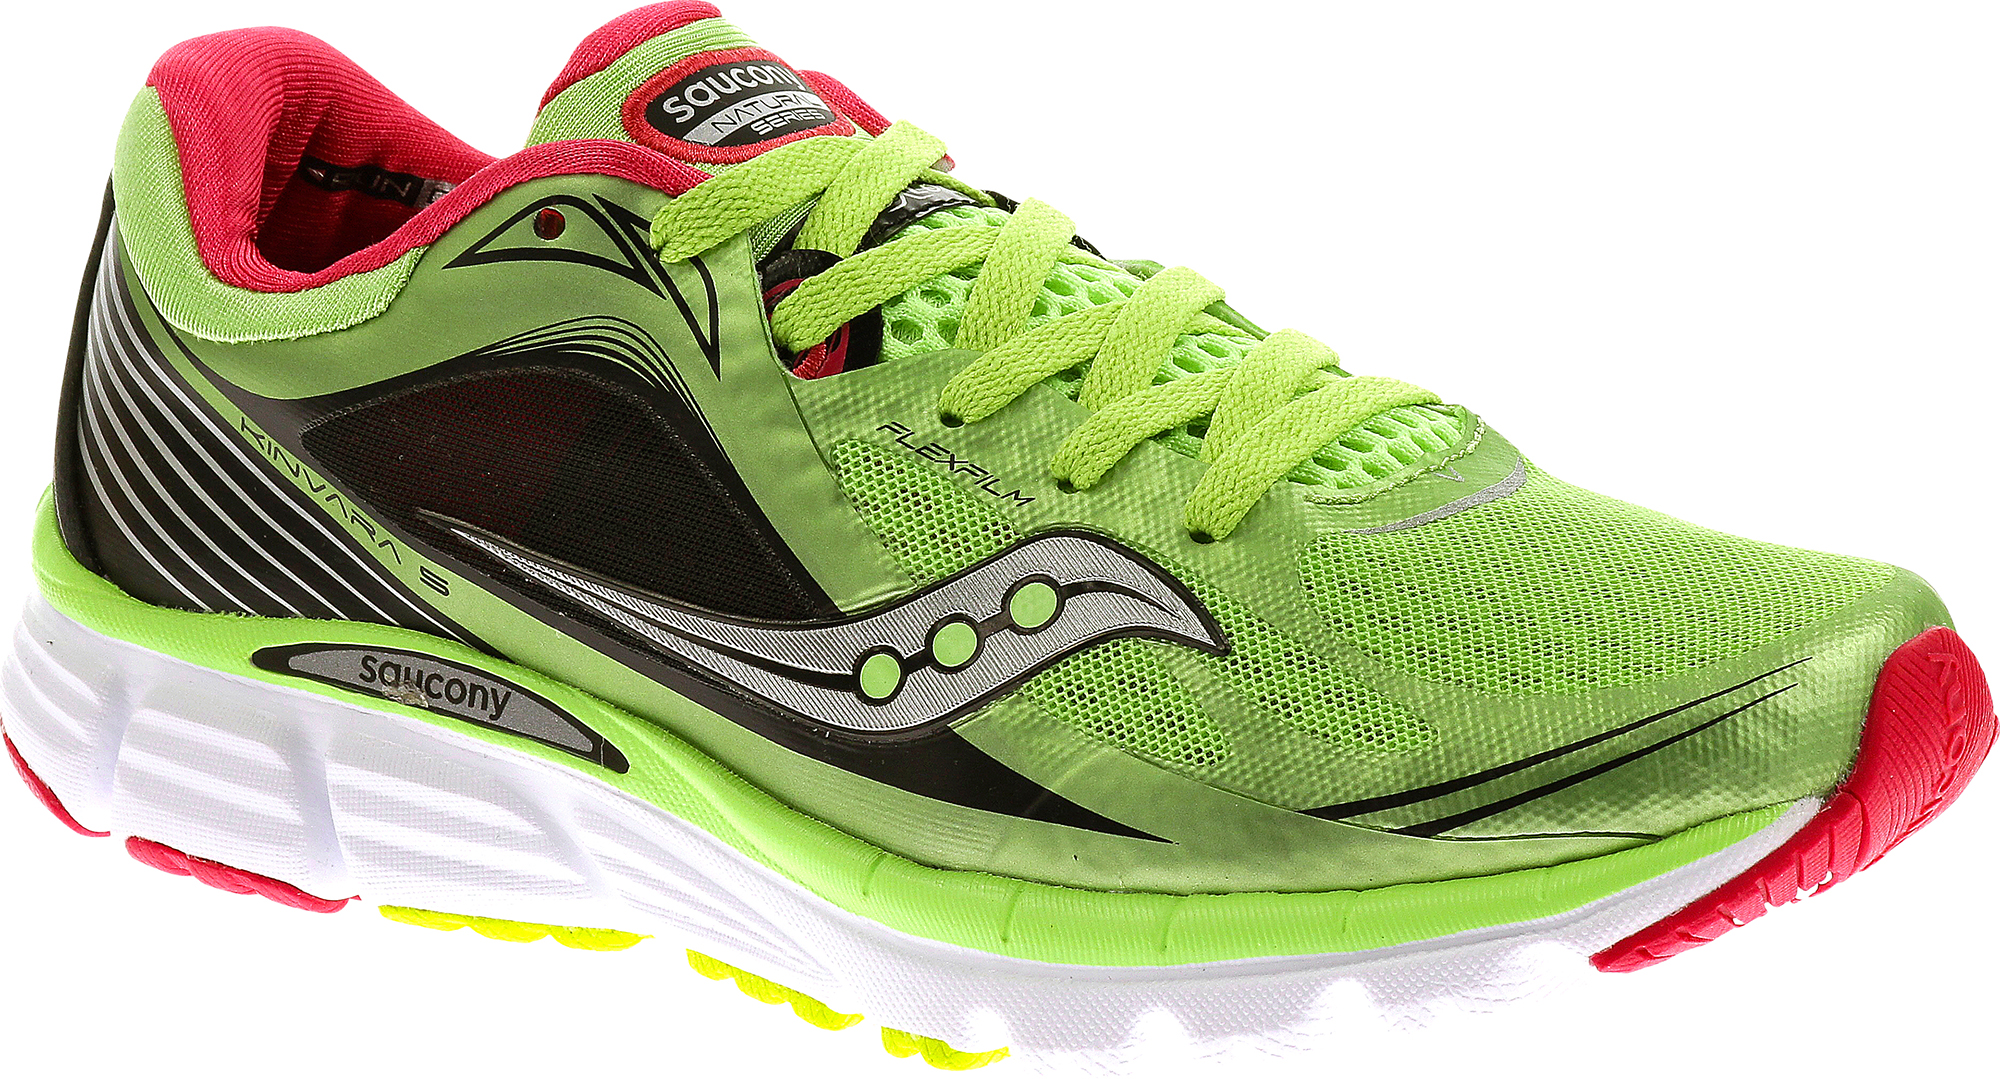 2017 Sale Outlet Saucony Kinvara 5 Women's BlueSlime S10238